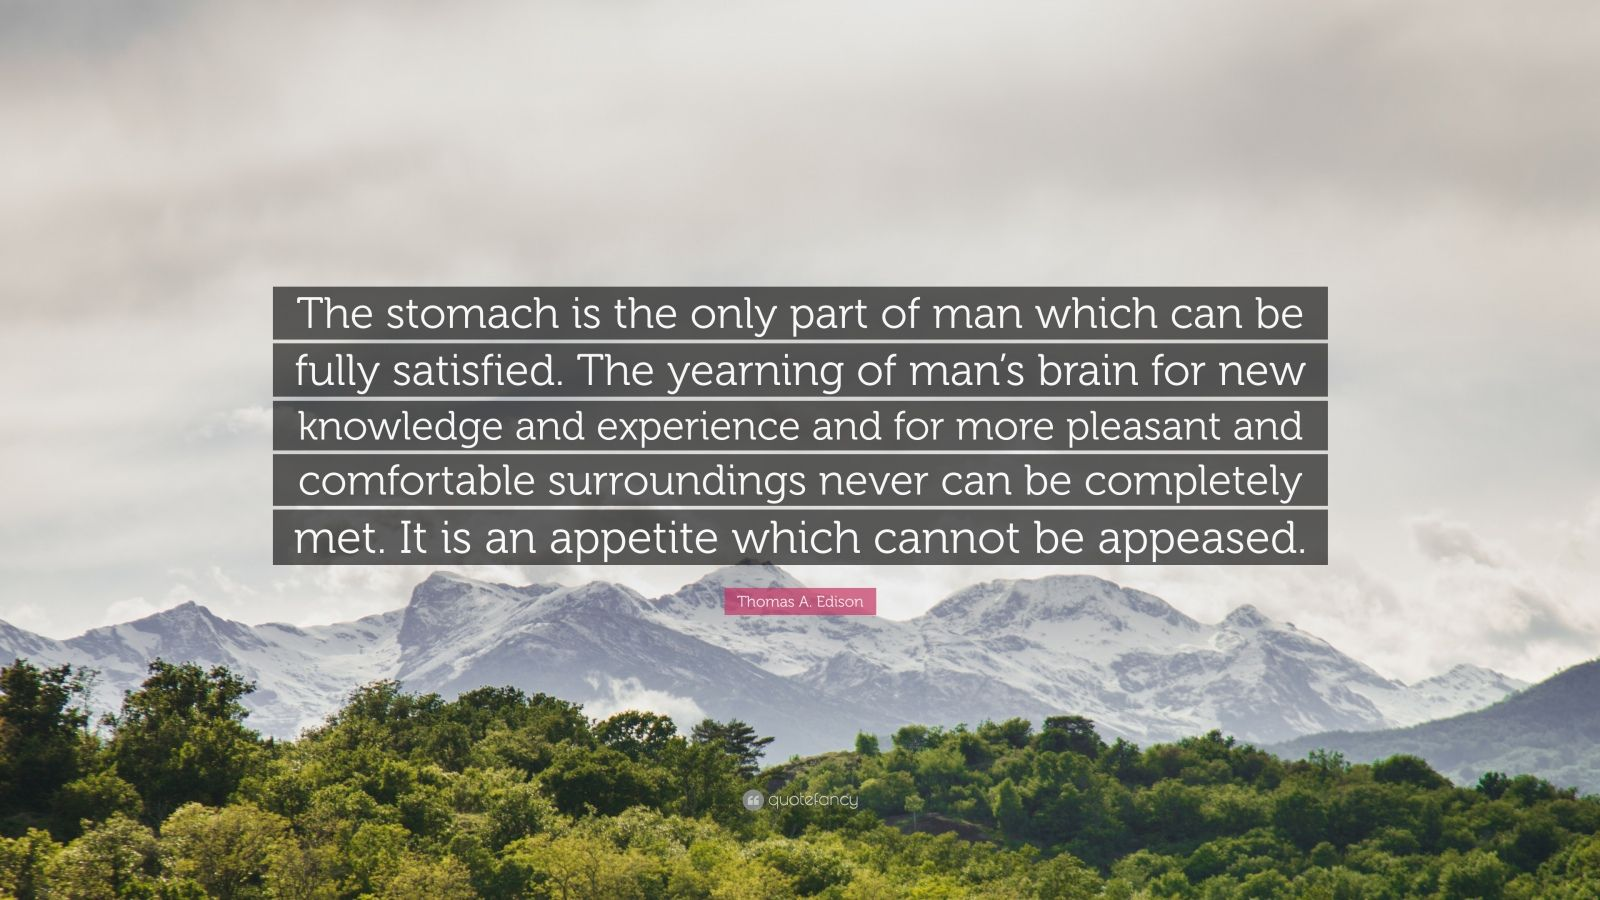 """Thomas A. Edison Quote: """"The stomach is the only part of man which can be fully satisfied. The yearning of man's brain for new knowledge and experience and for more pleasant and comfortable surroundings never can be completely met. It is an appetite which cannot be appeased."""""""